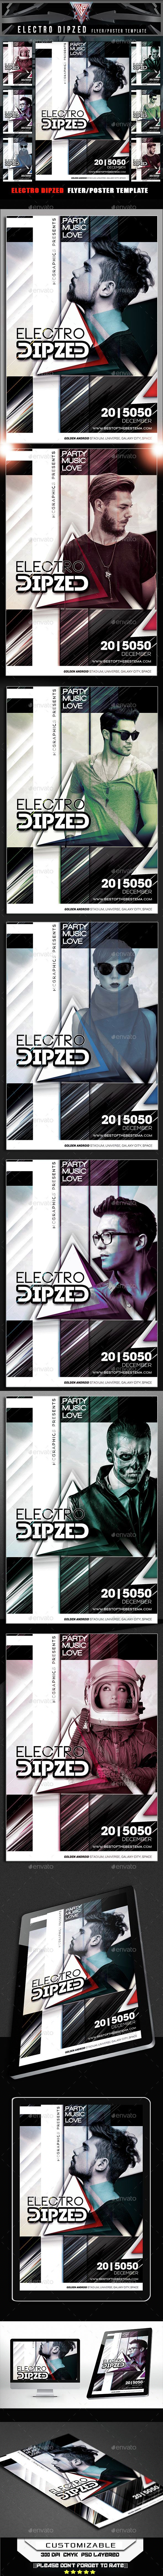 Electro Dipzed Flyer Template - Flyers Print Templates